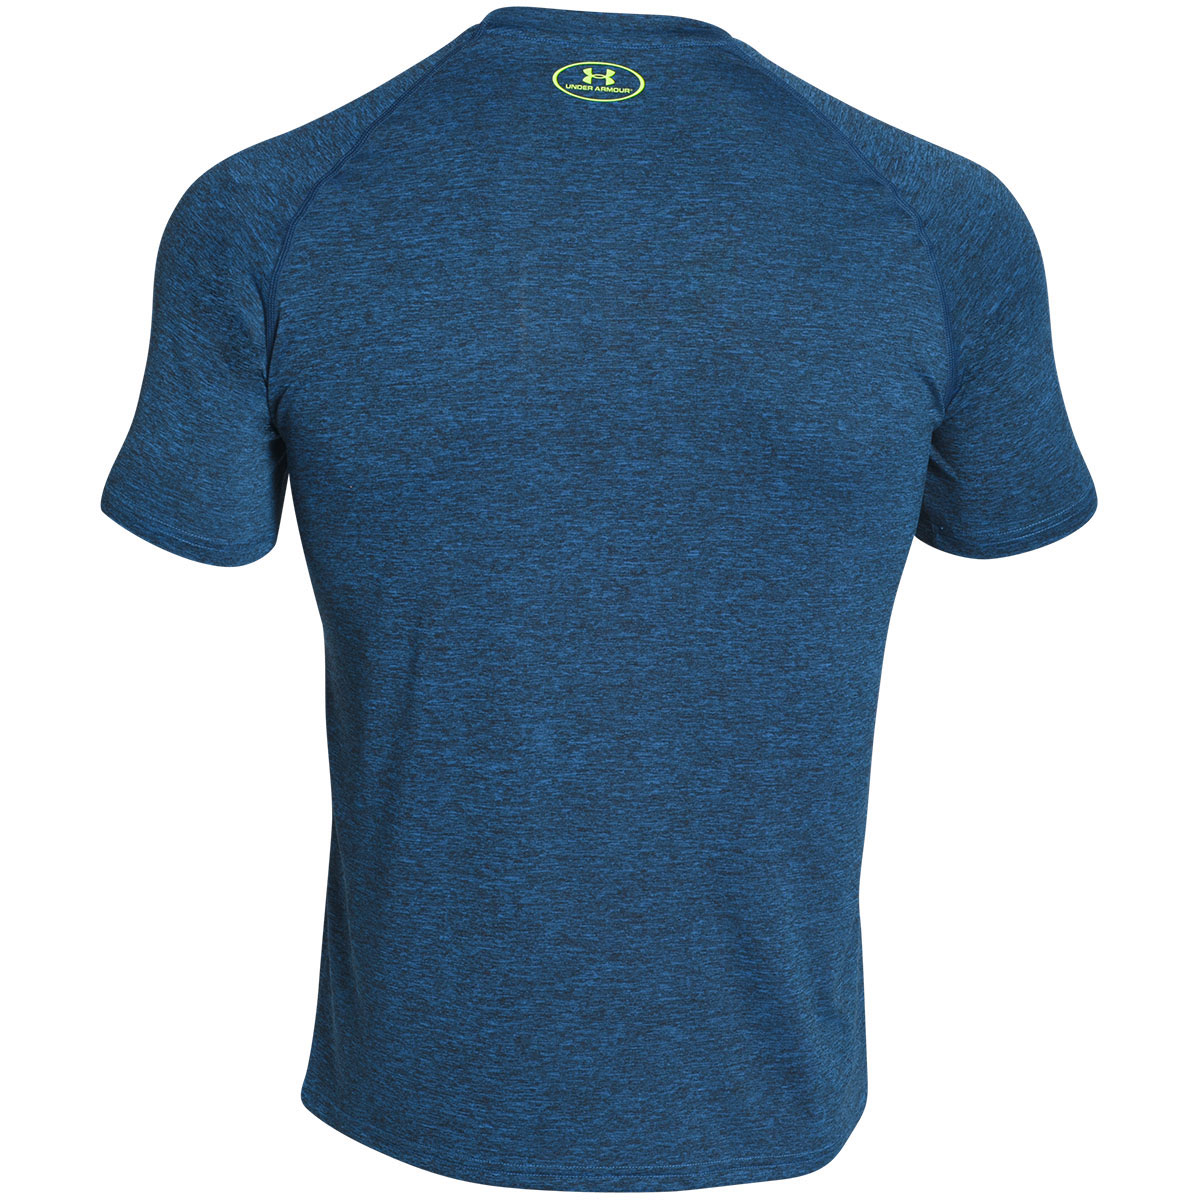 Under-Armour-Mens-UA-Tech-SS-T-Shirt-HeatGear-Training-31-OFF-RRP thumbnail 87